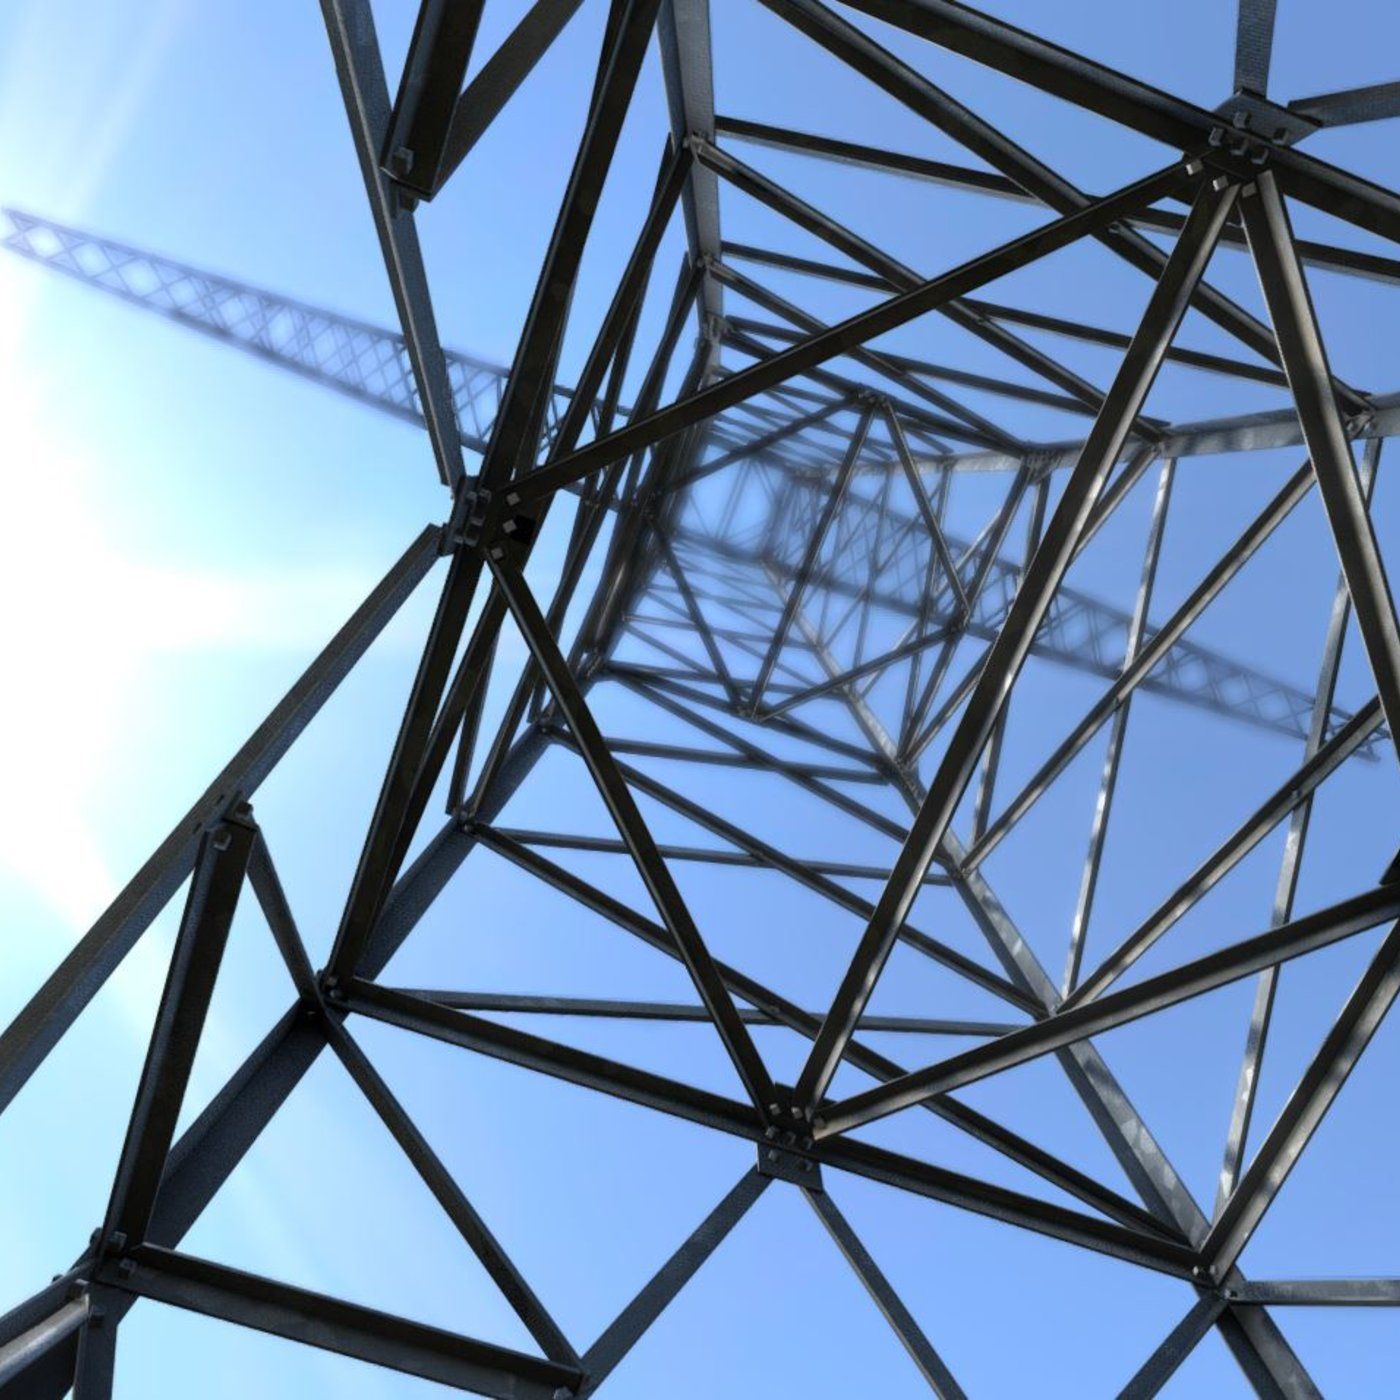 Transmission Tower 18 Meters